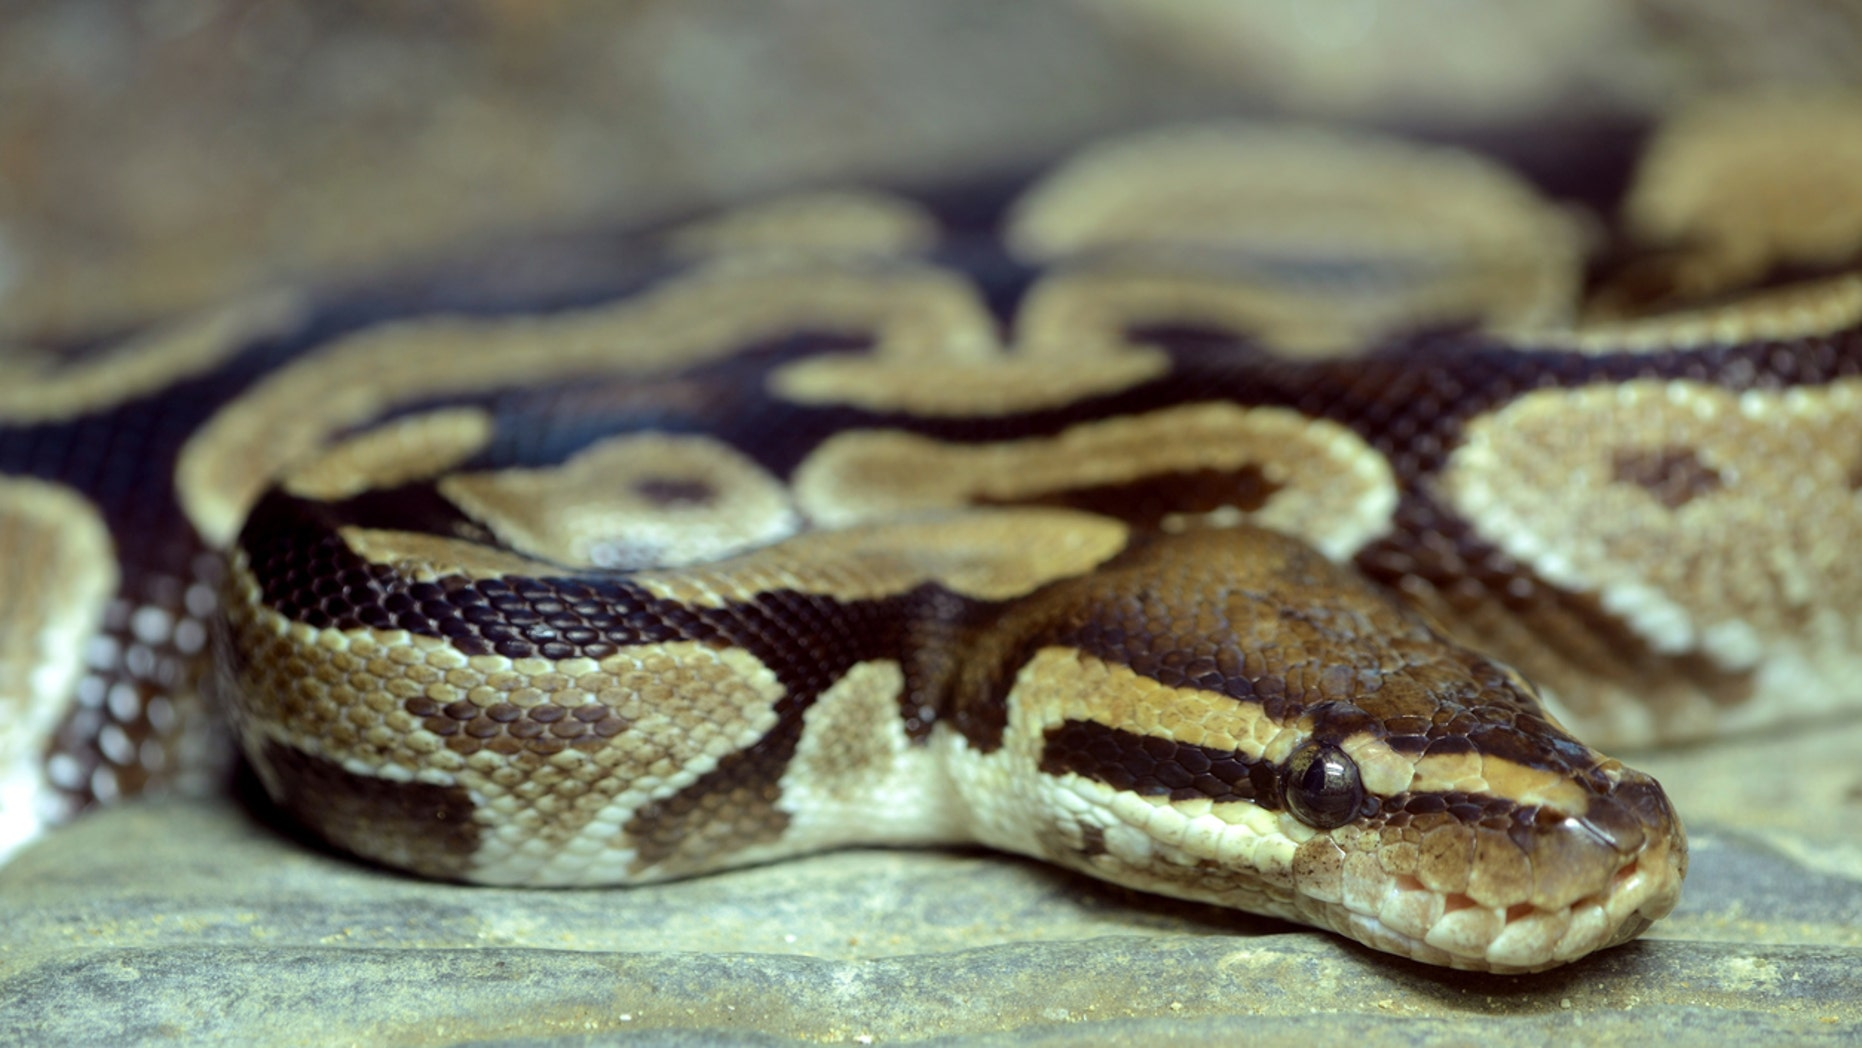 A python (not pictured) was found in a woman's shoe while she was unpacking her luggage after a vacation.